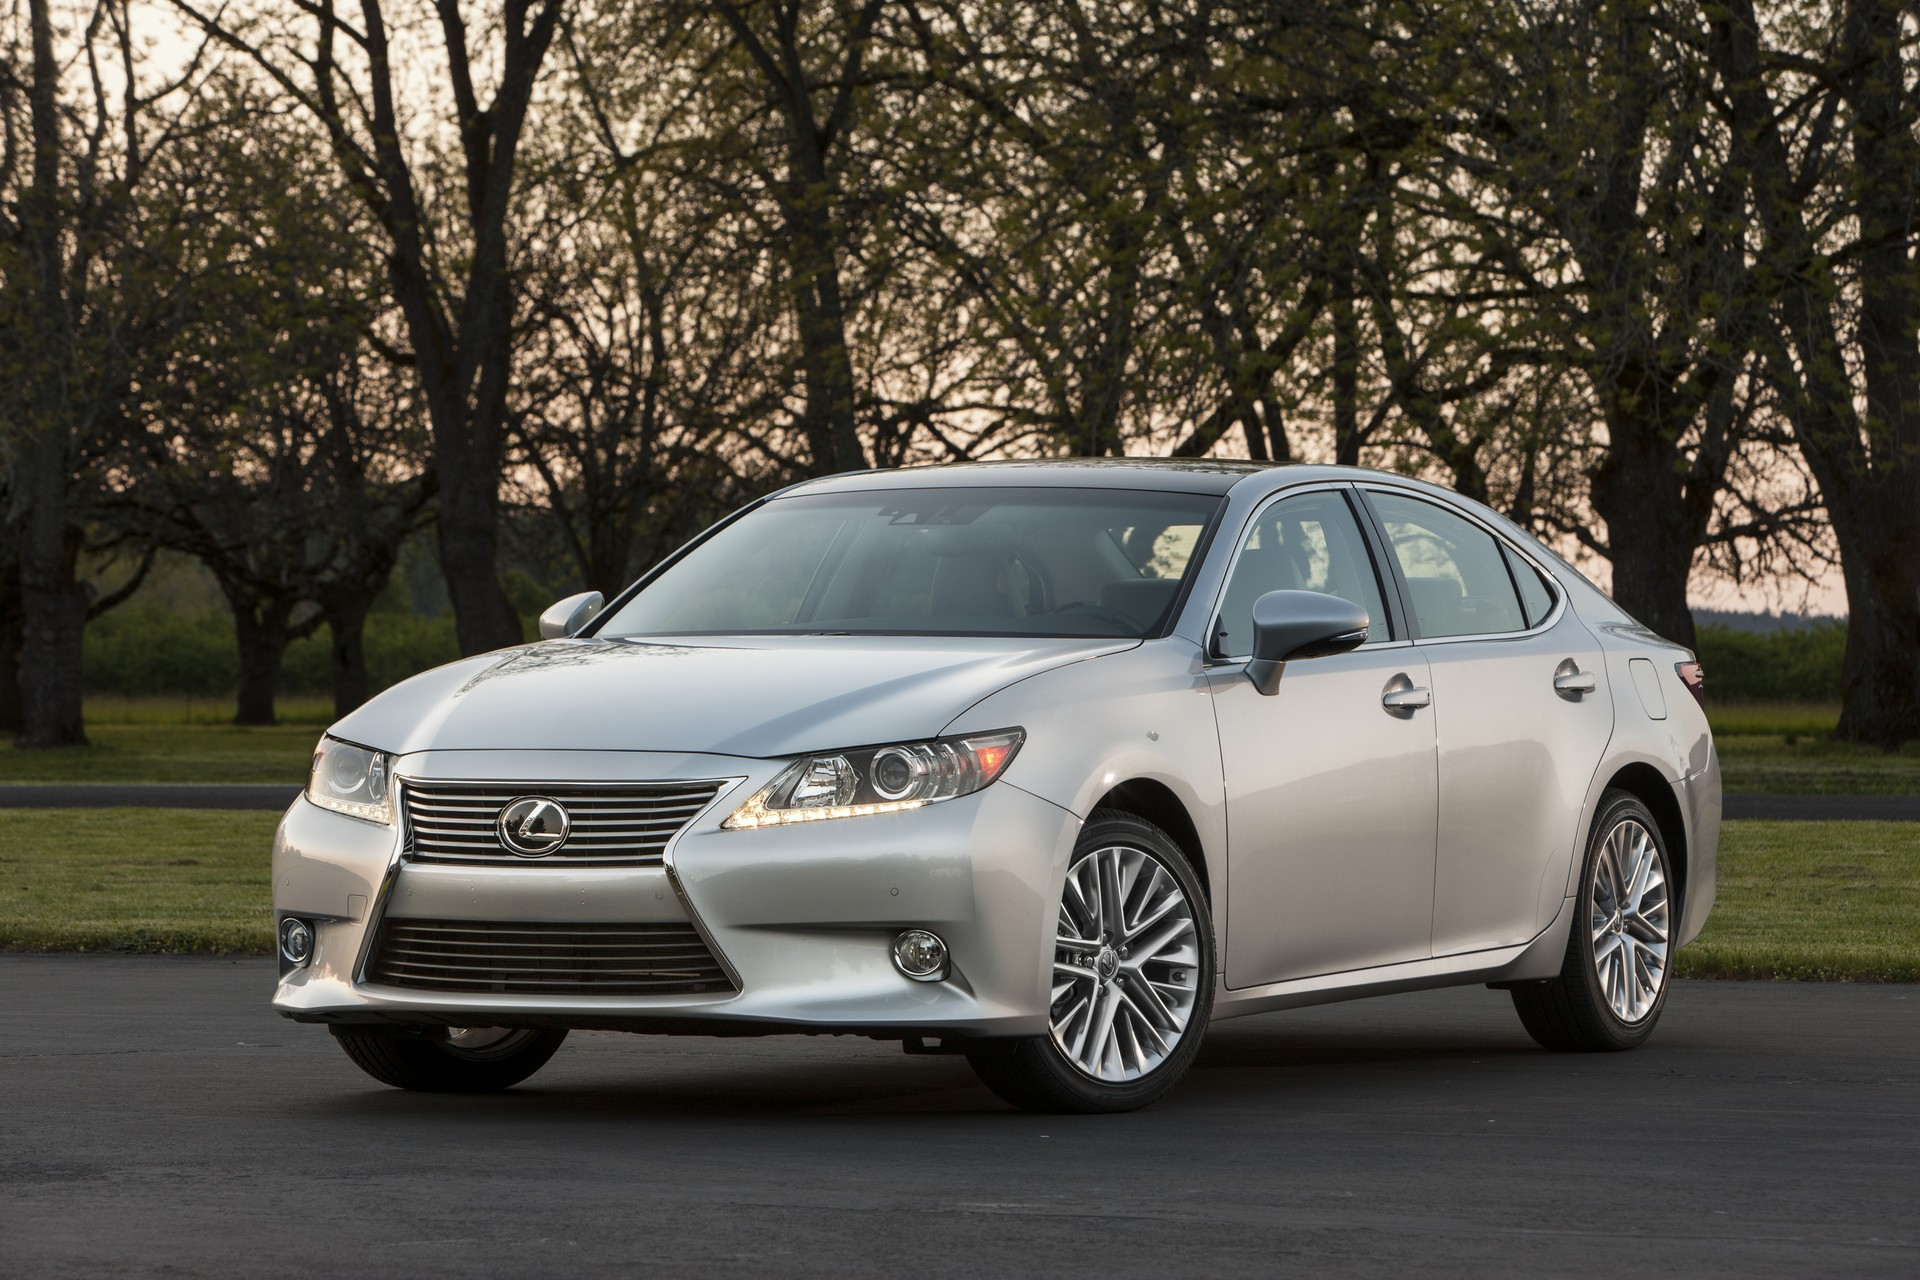 2015 lexus es 350 review ratings specs prices and photos the car connection. Black Bedroom Furniture Sets. Home Design Ideas